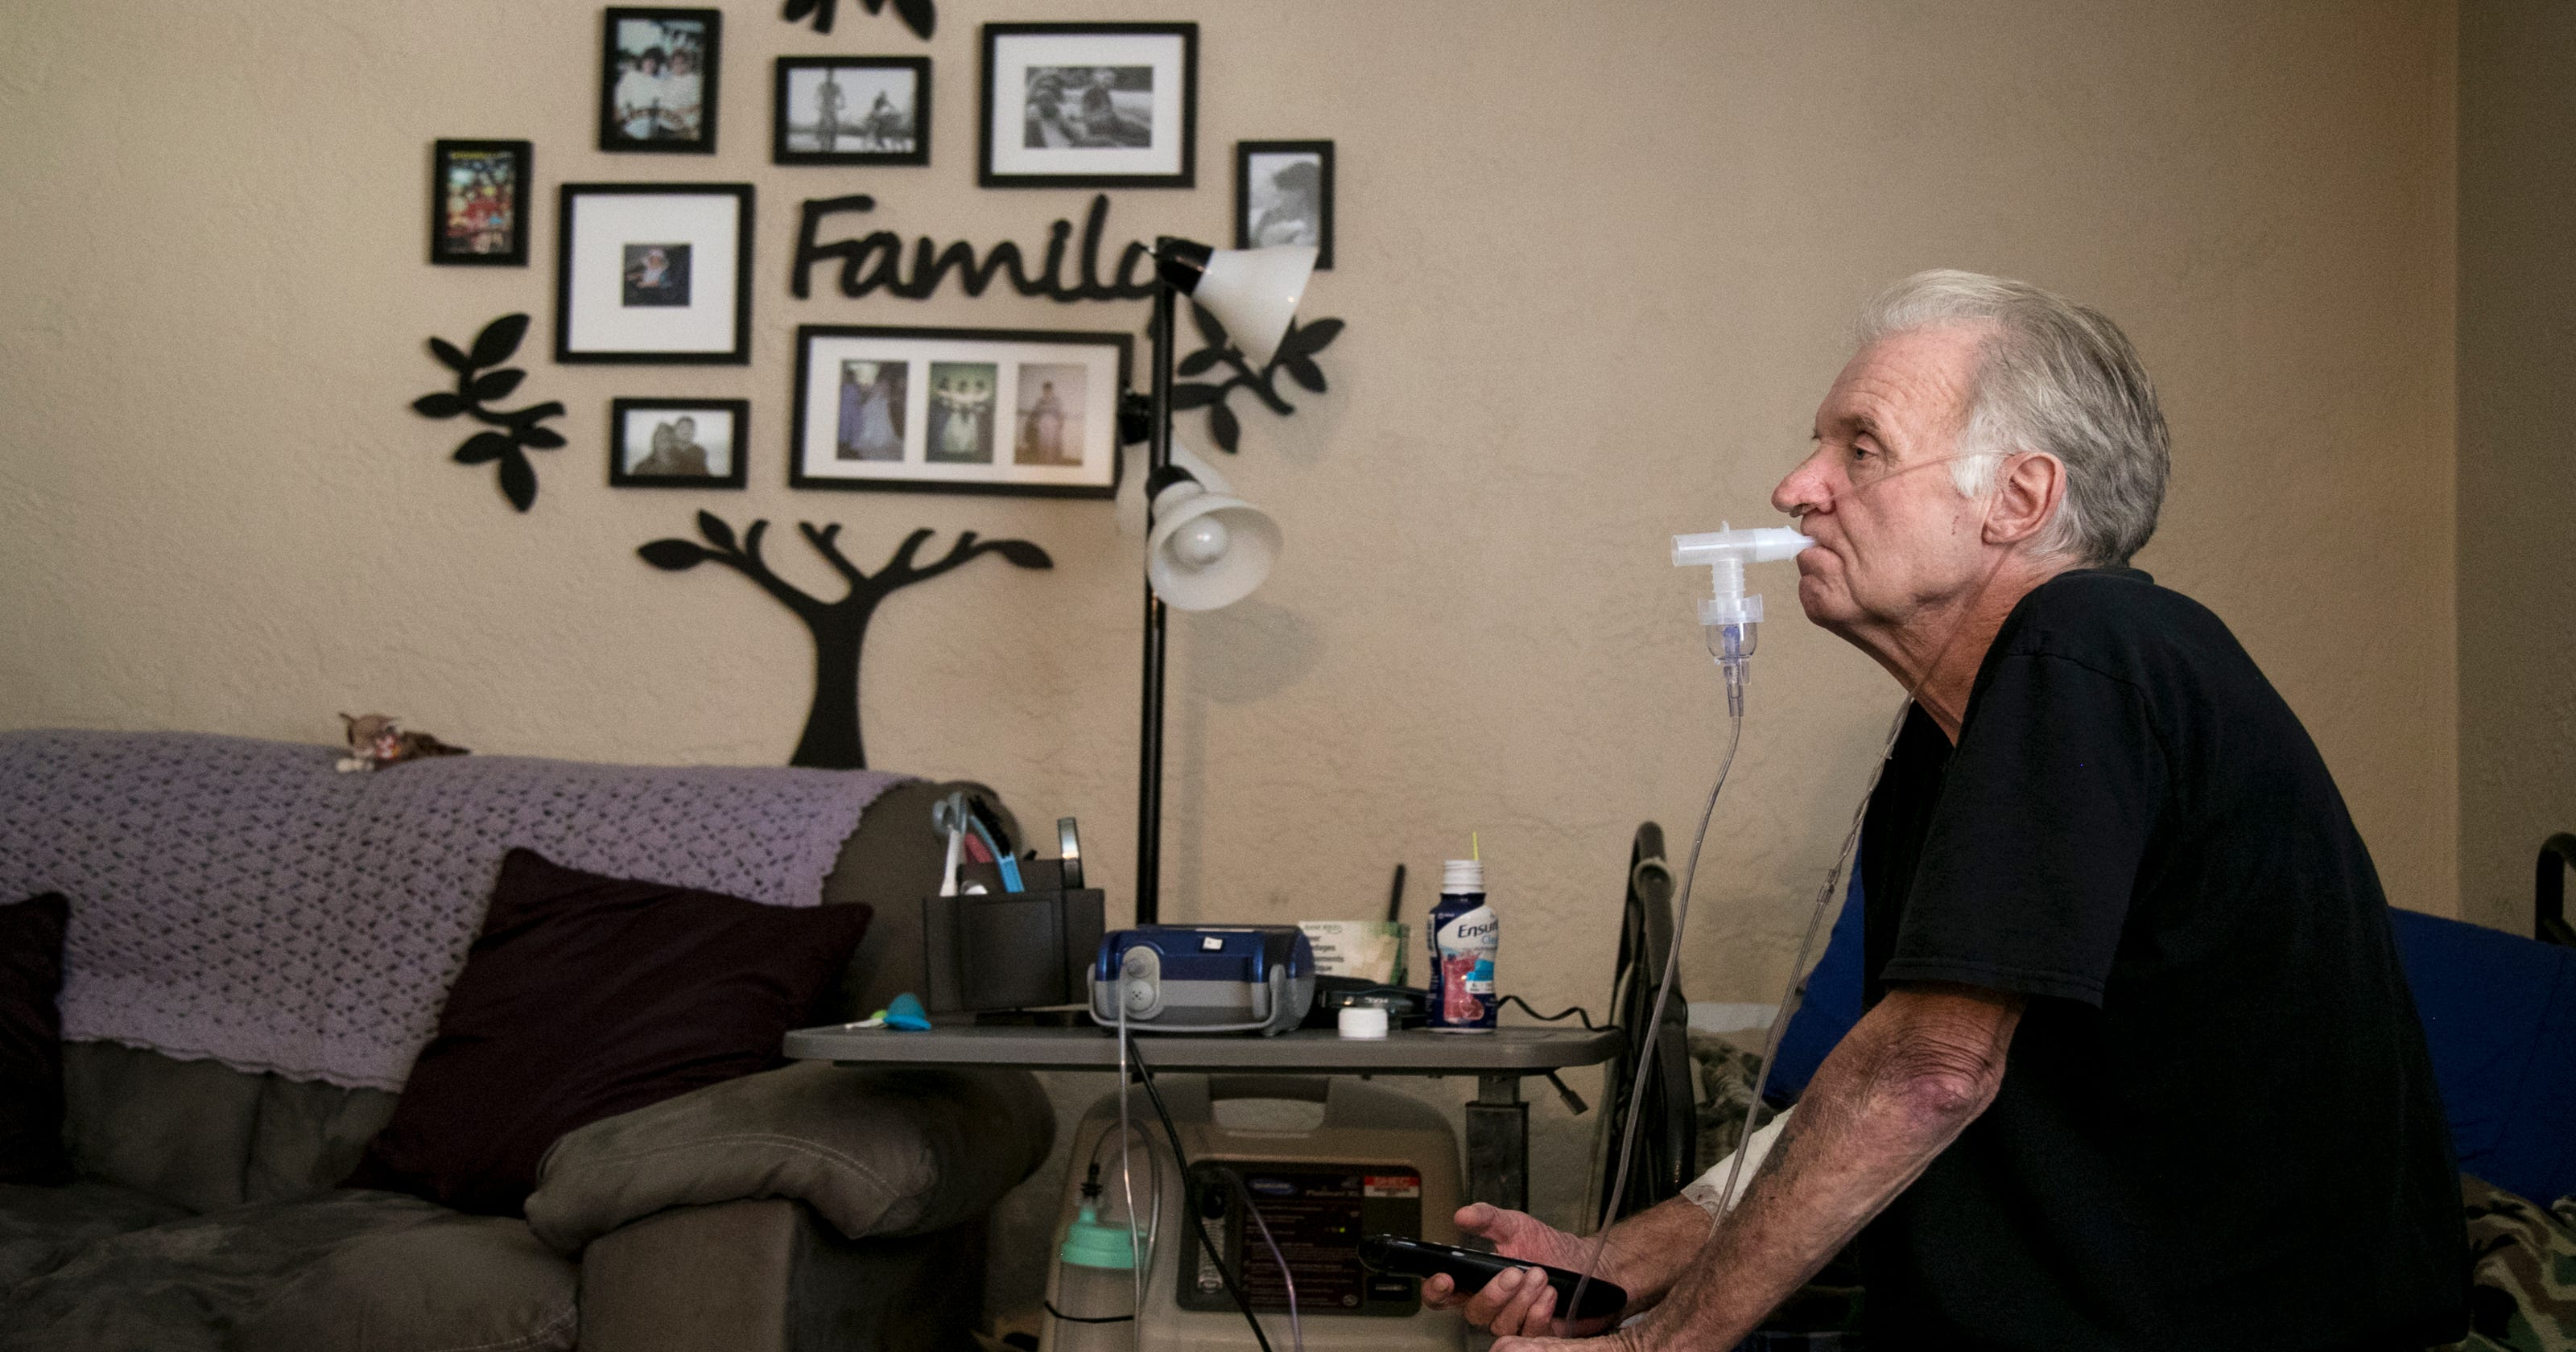 Too long to die: Some 'terminal' patients lose Medicare